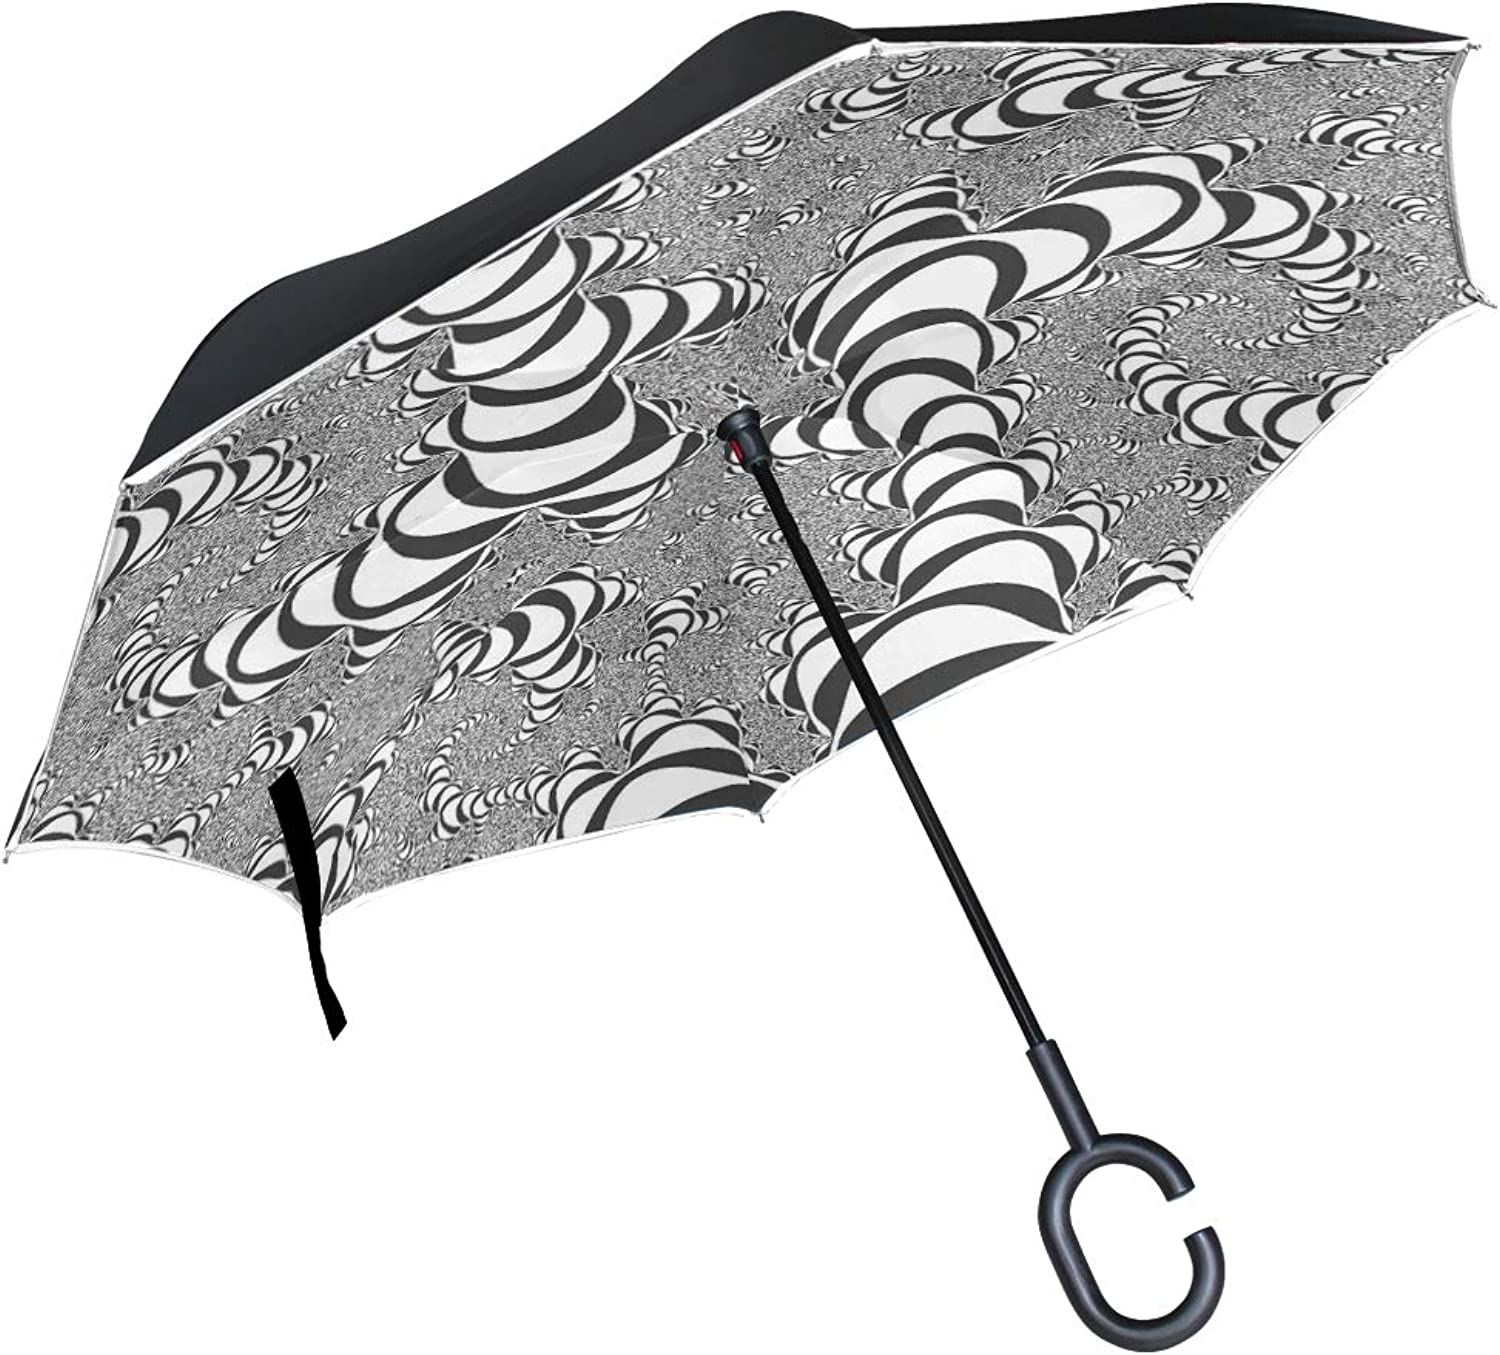 Double Layer Ingreened Fractal Abstraction Abstract Digital Graphic 298461 Umbrellas Reverse Folding Umbrella Windproof Uv Predection Big Straight Umbrella for Car Rain Outdoor with CShaped Handle